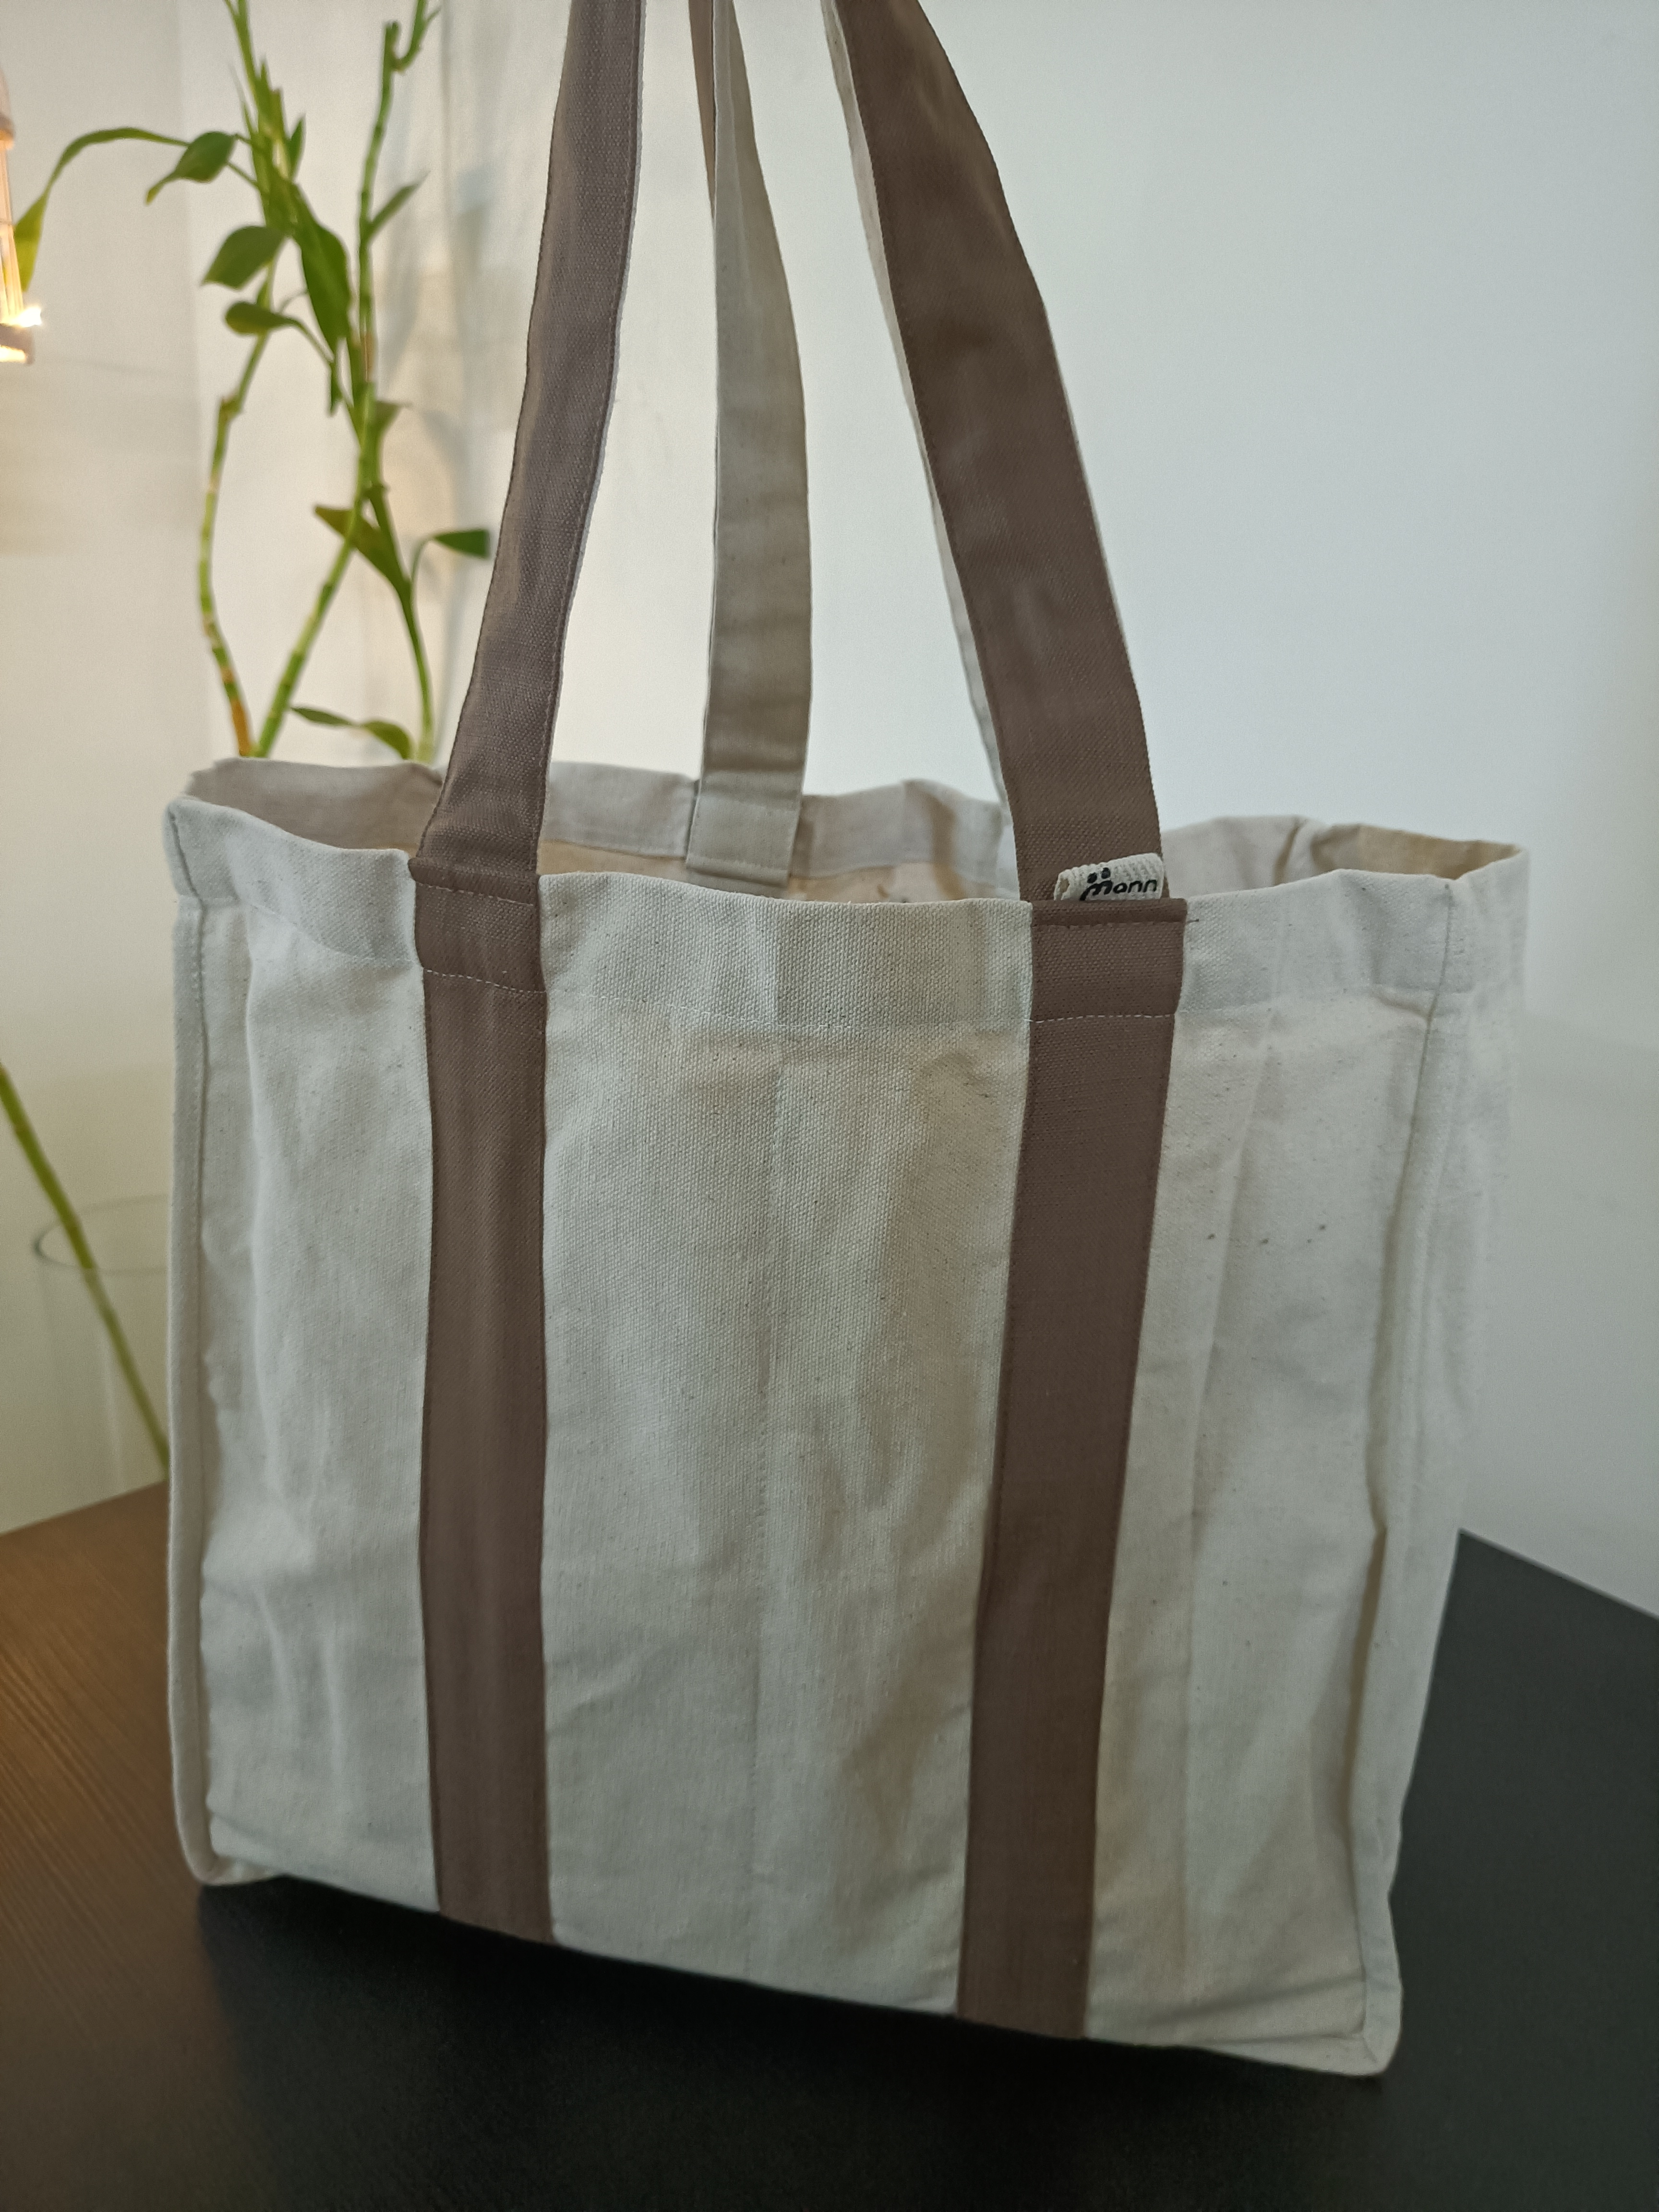 Market Bags with Inside Pockets Slider Thumbnail 2/4